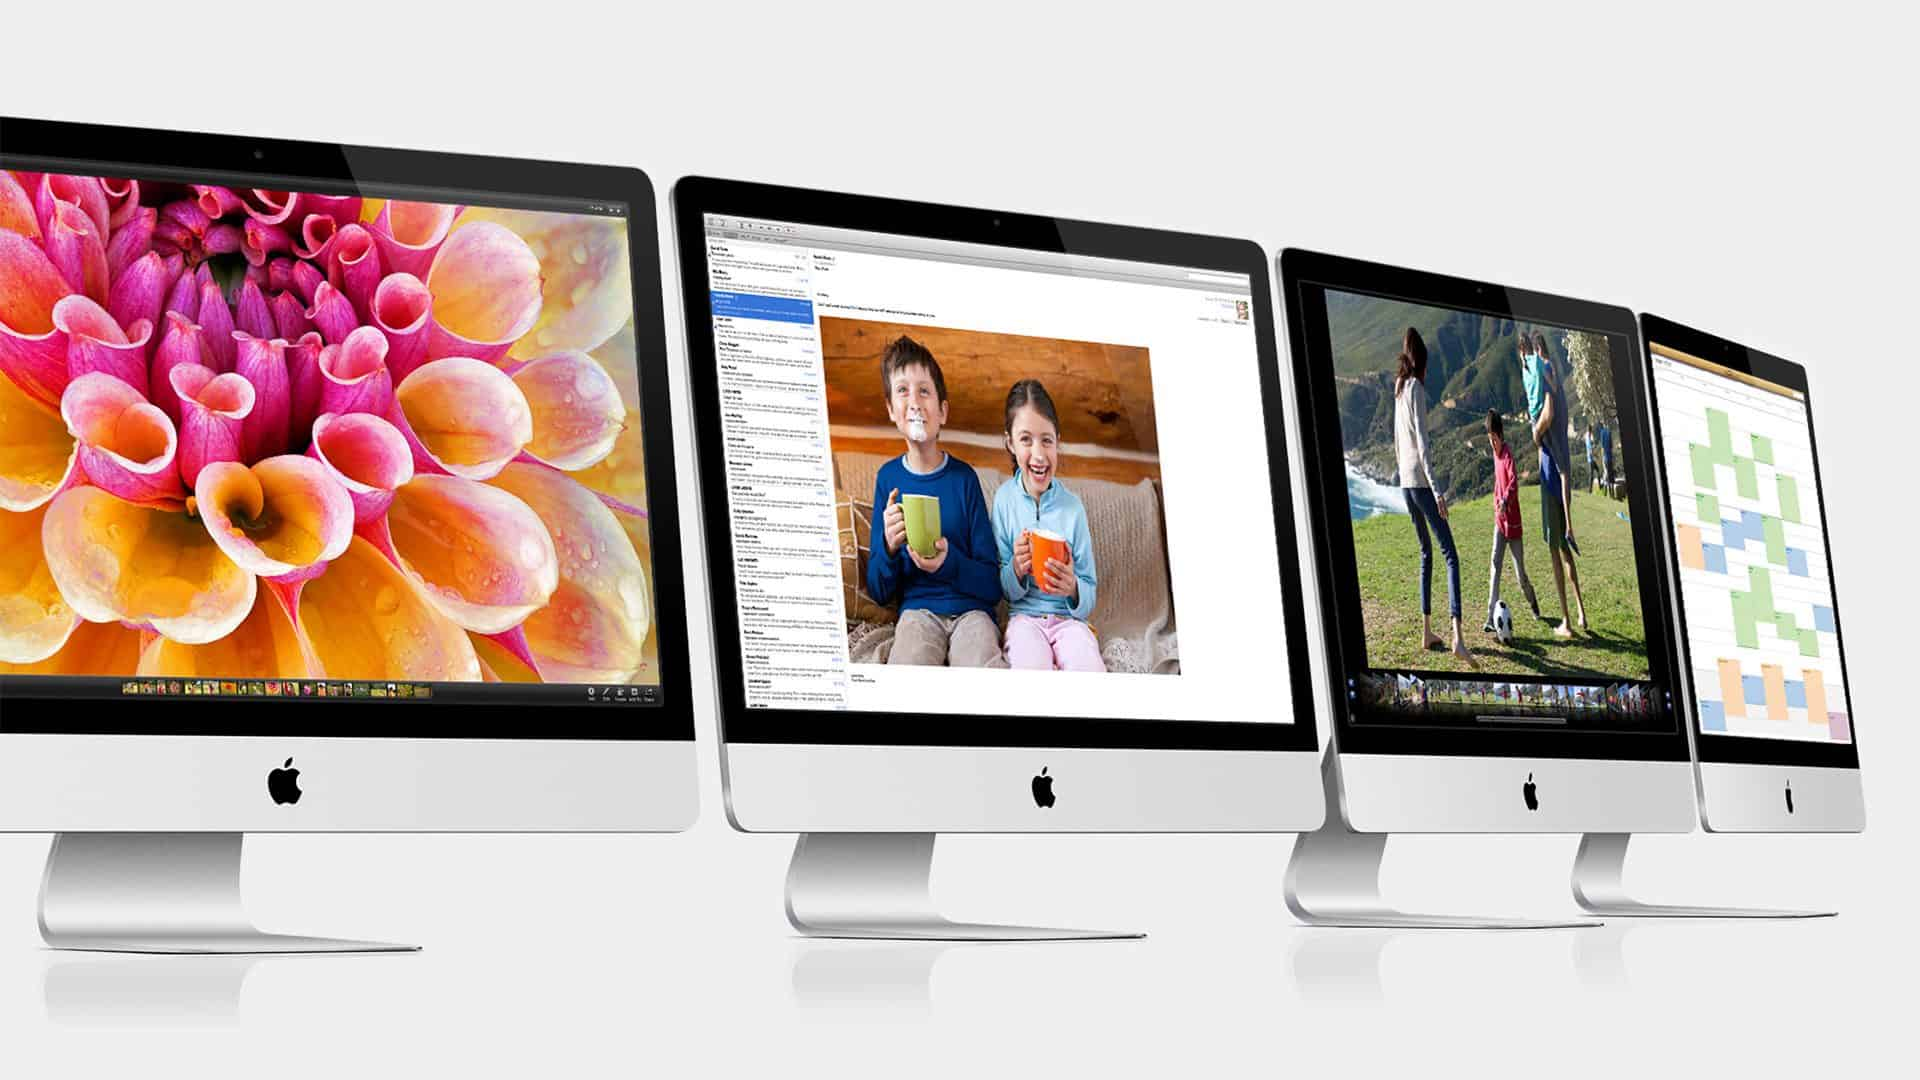 Apple will likely not release ARM based iMac this year